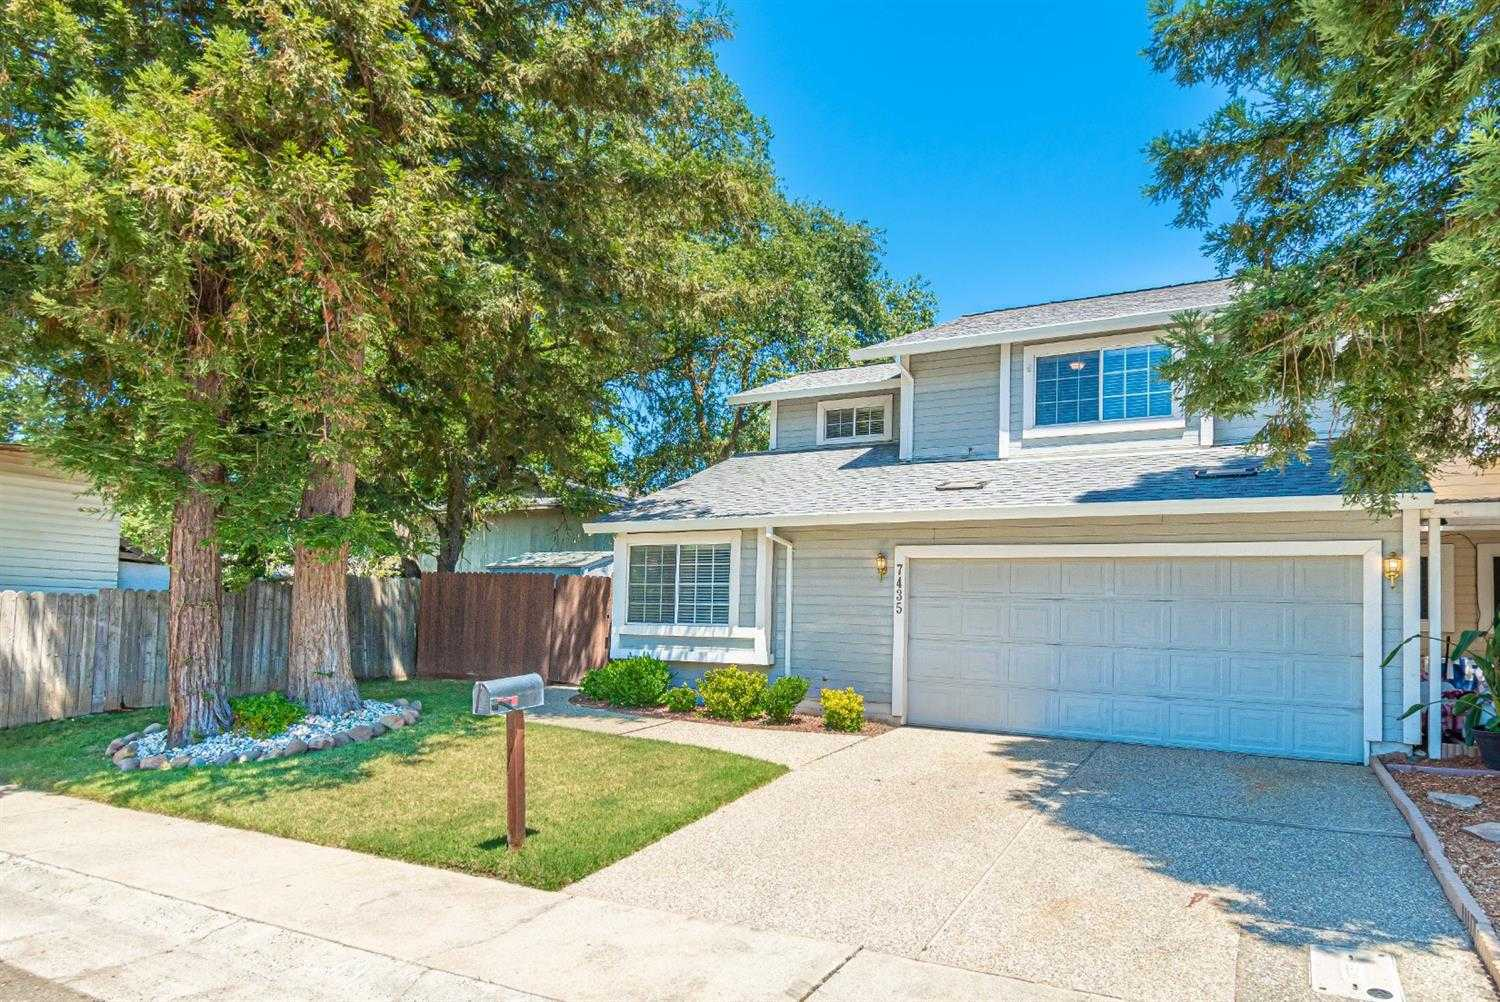 $375,000 - 4Br/3Ba -  for Sale in Citrus Heights